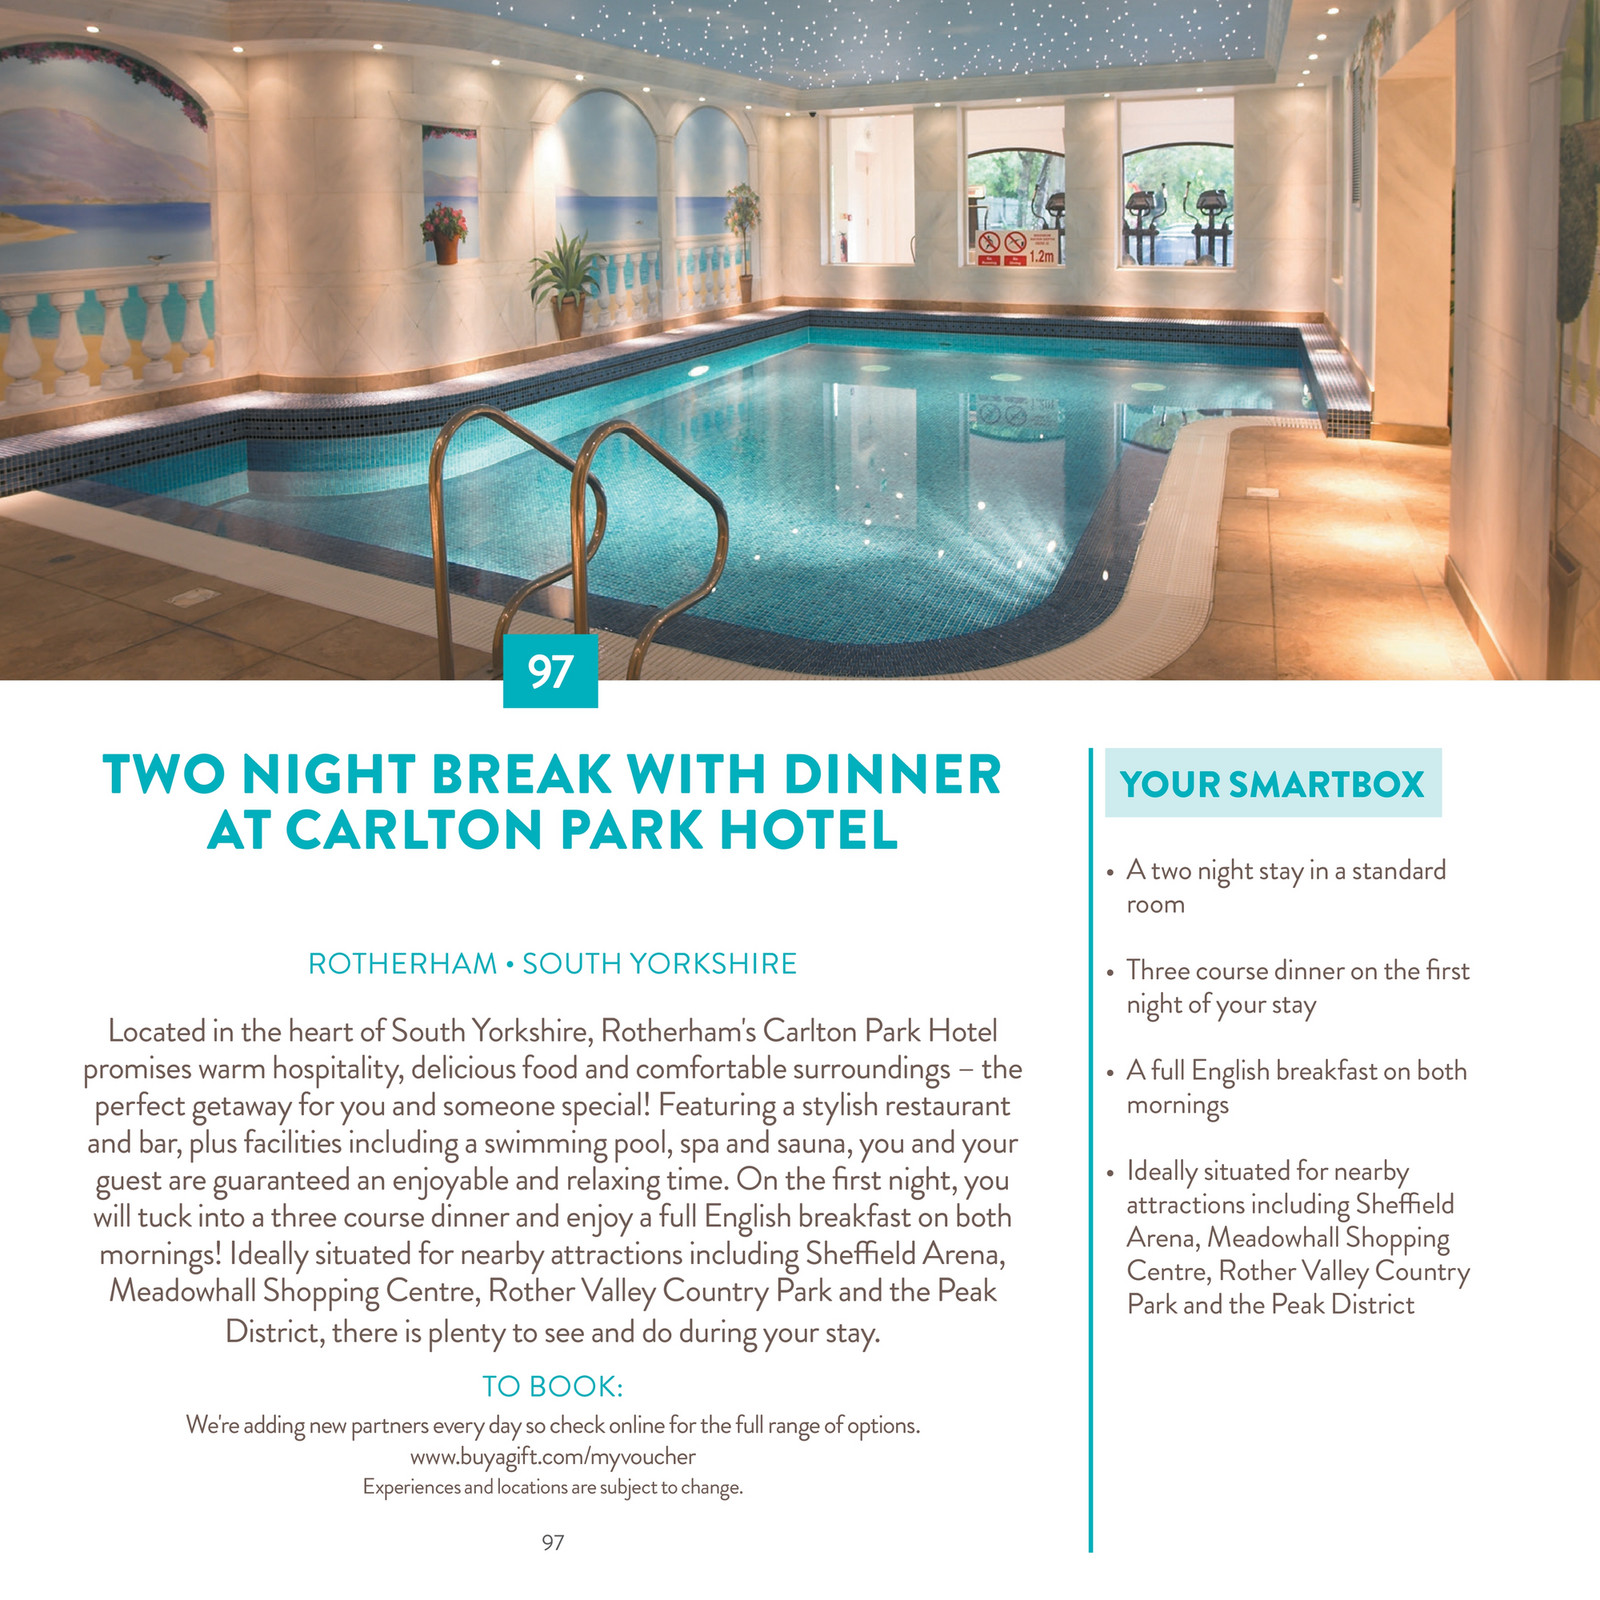 Three Course Dinner On The First Night Of Your Stay O A Full English Breakfast Both Mornings Ideally Situated For Nearby